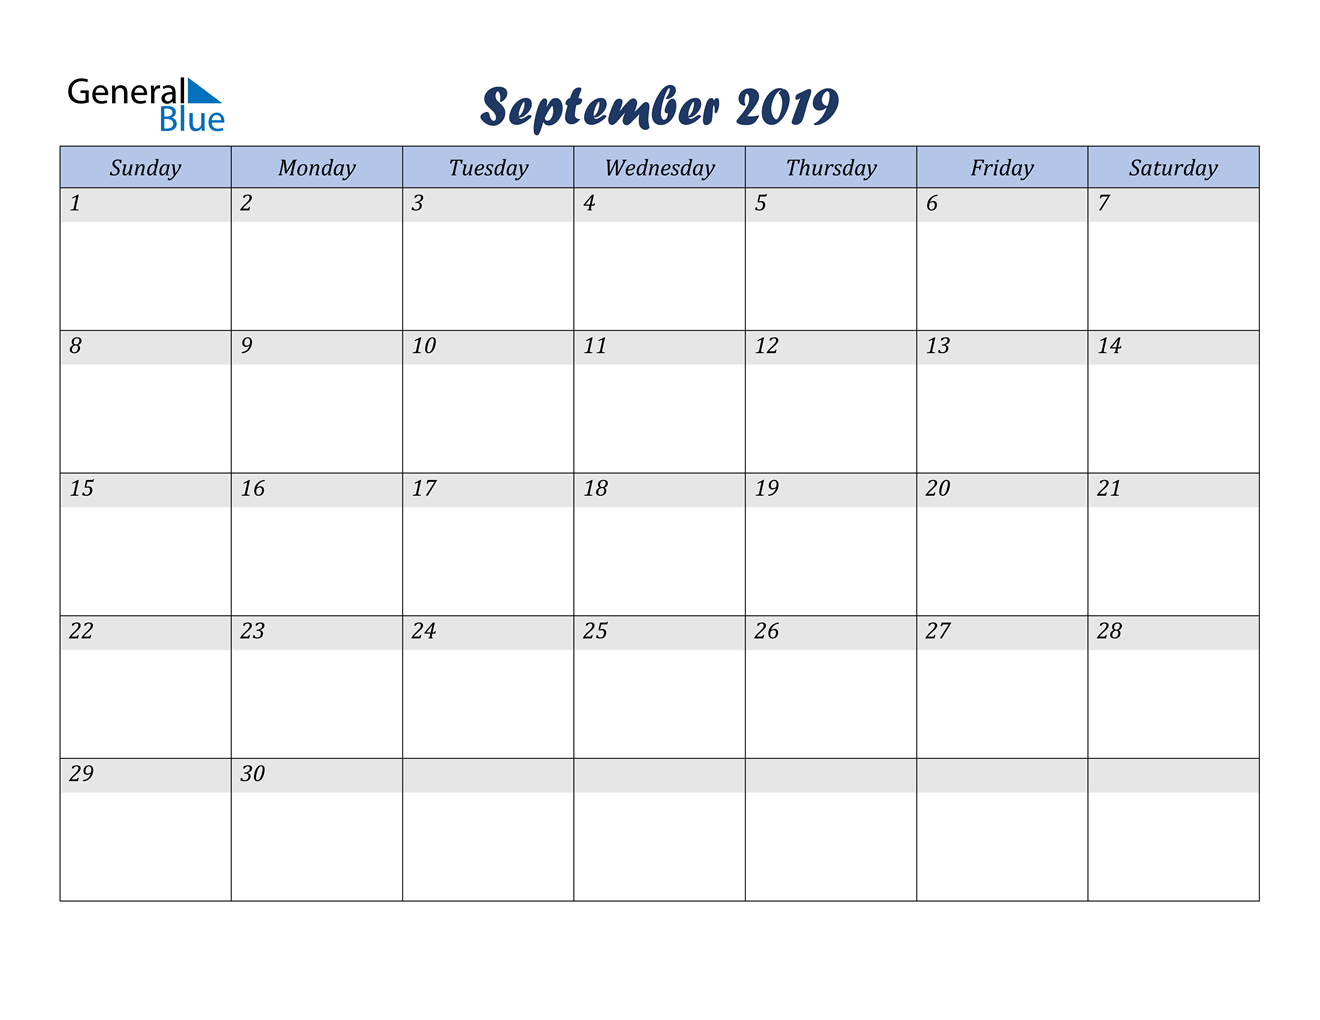 Image of September 2019 Italicized and Cool Blue, A Fun Calendar in PDF, Word and Excel Calendar